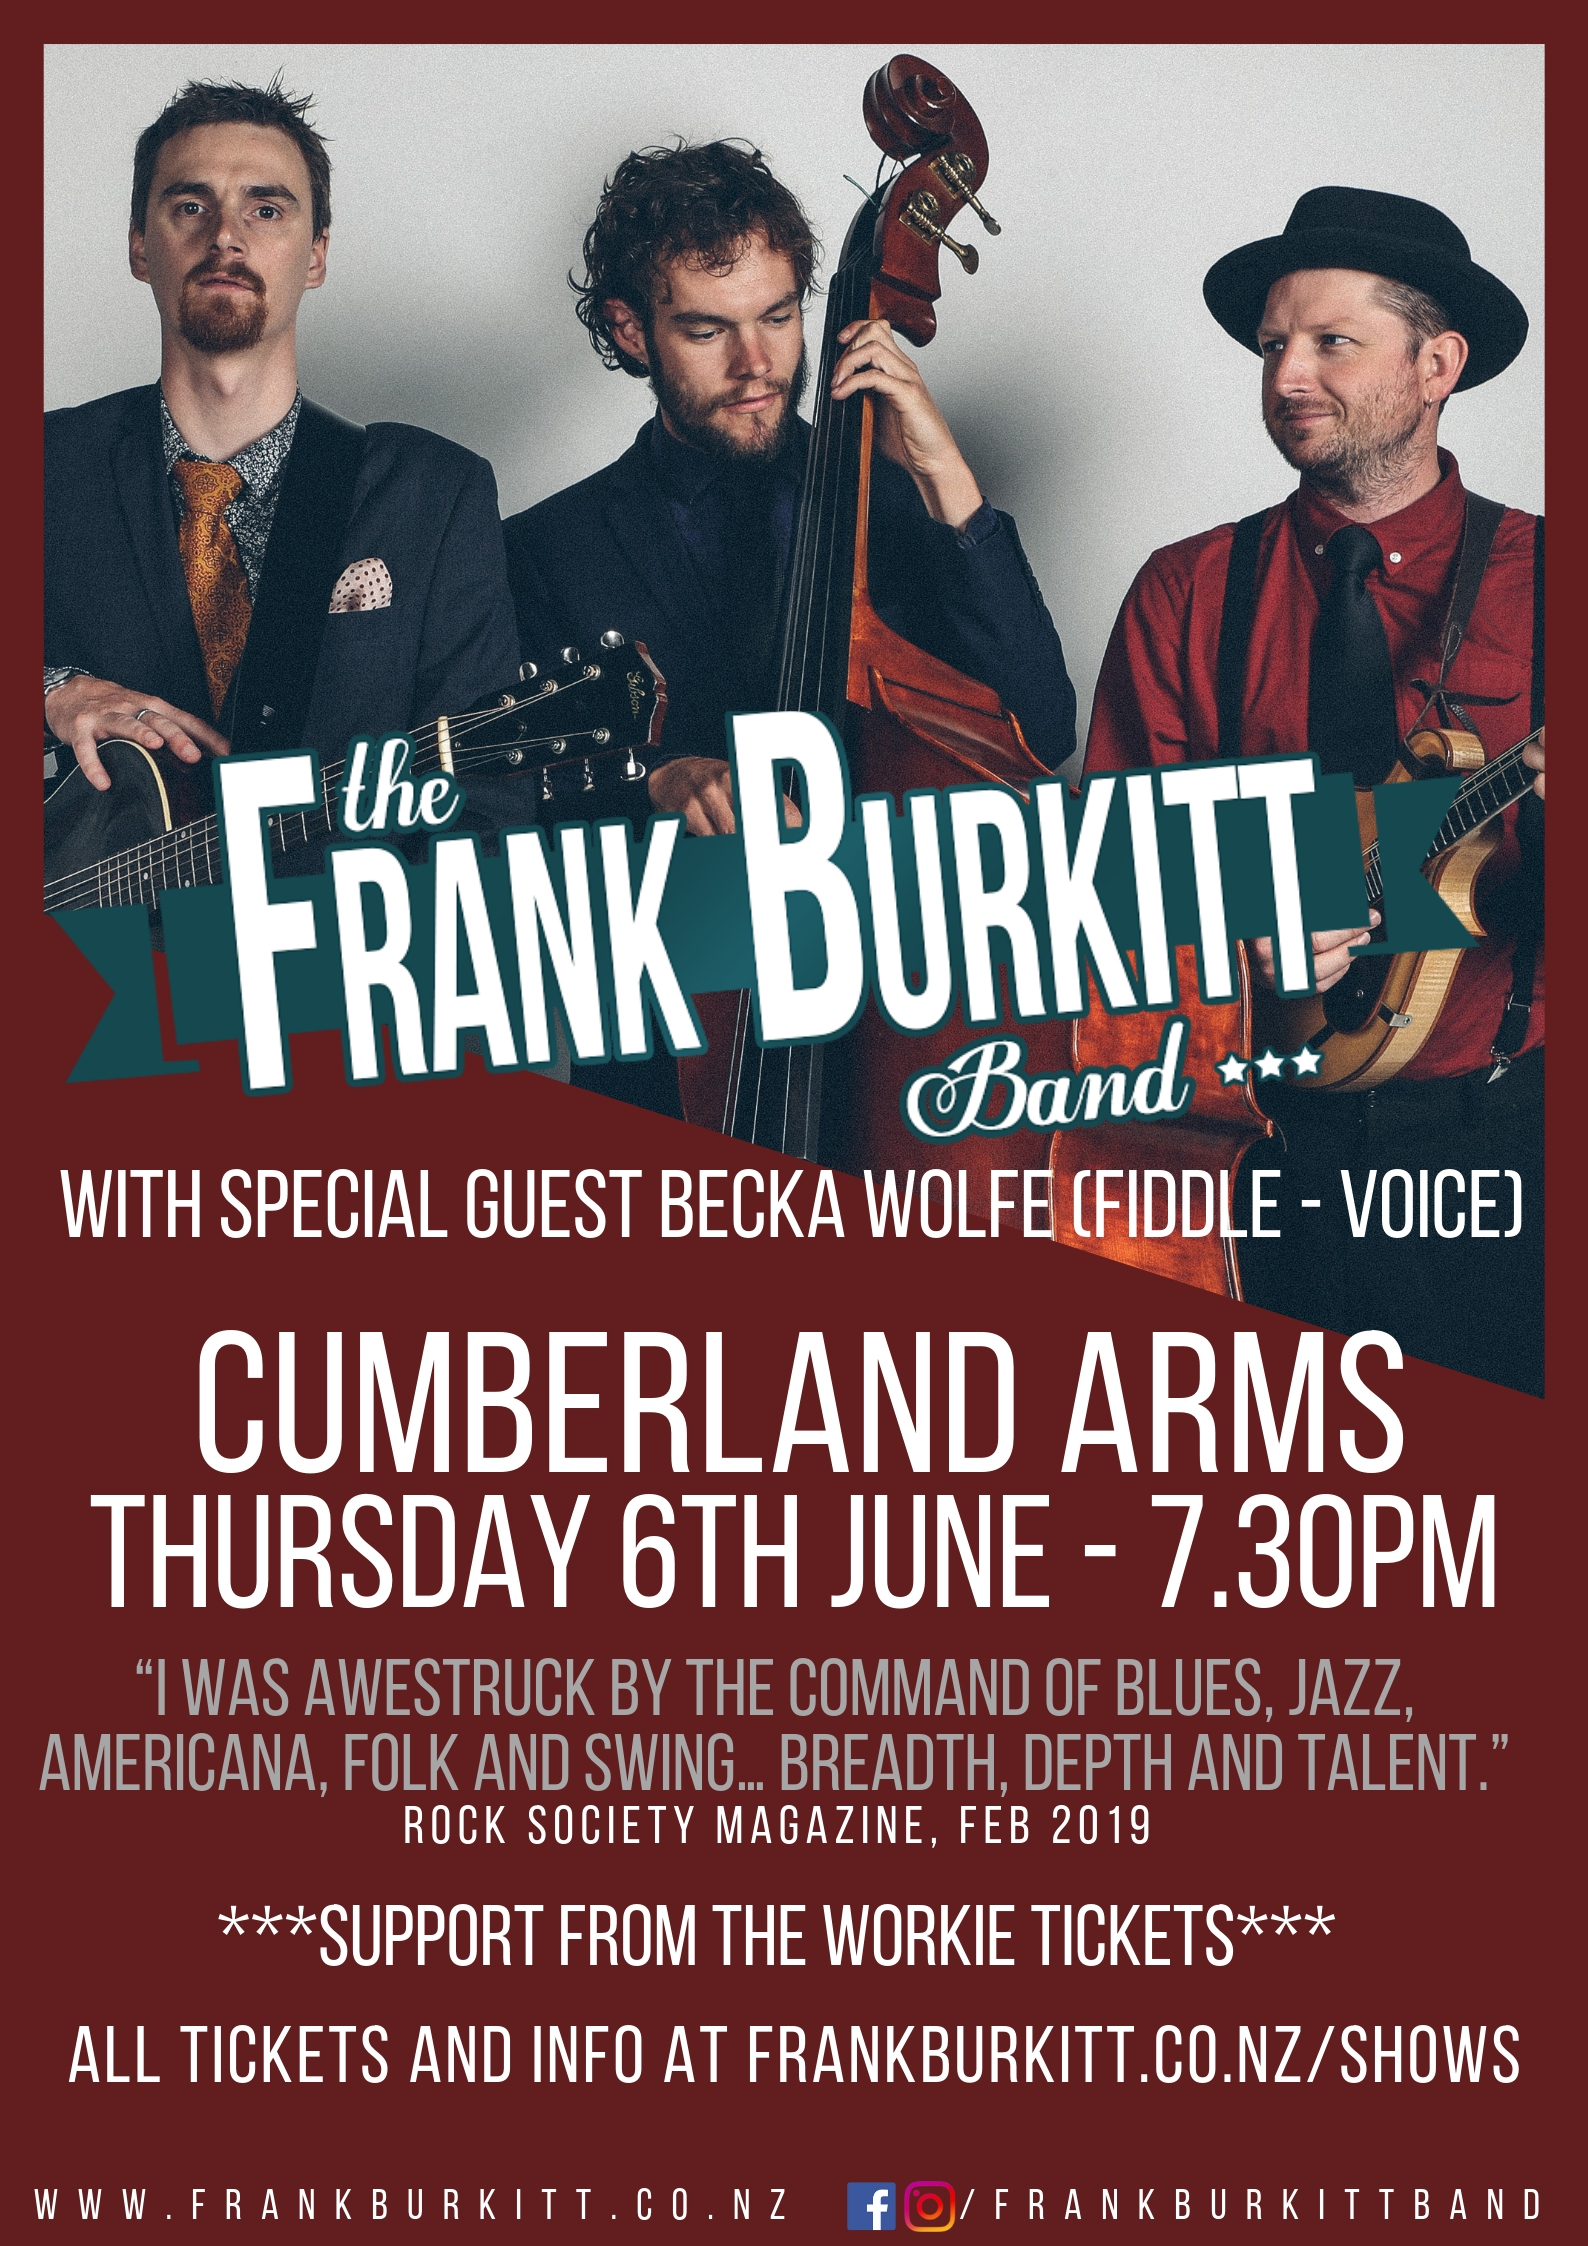 FBB Cumberland Arms Venue Poster 2019